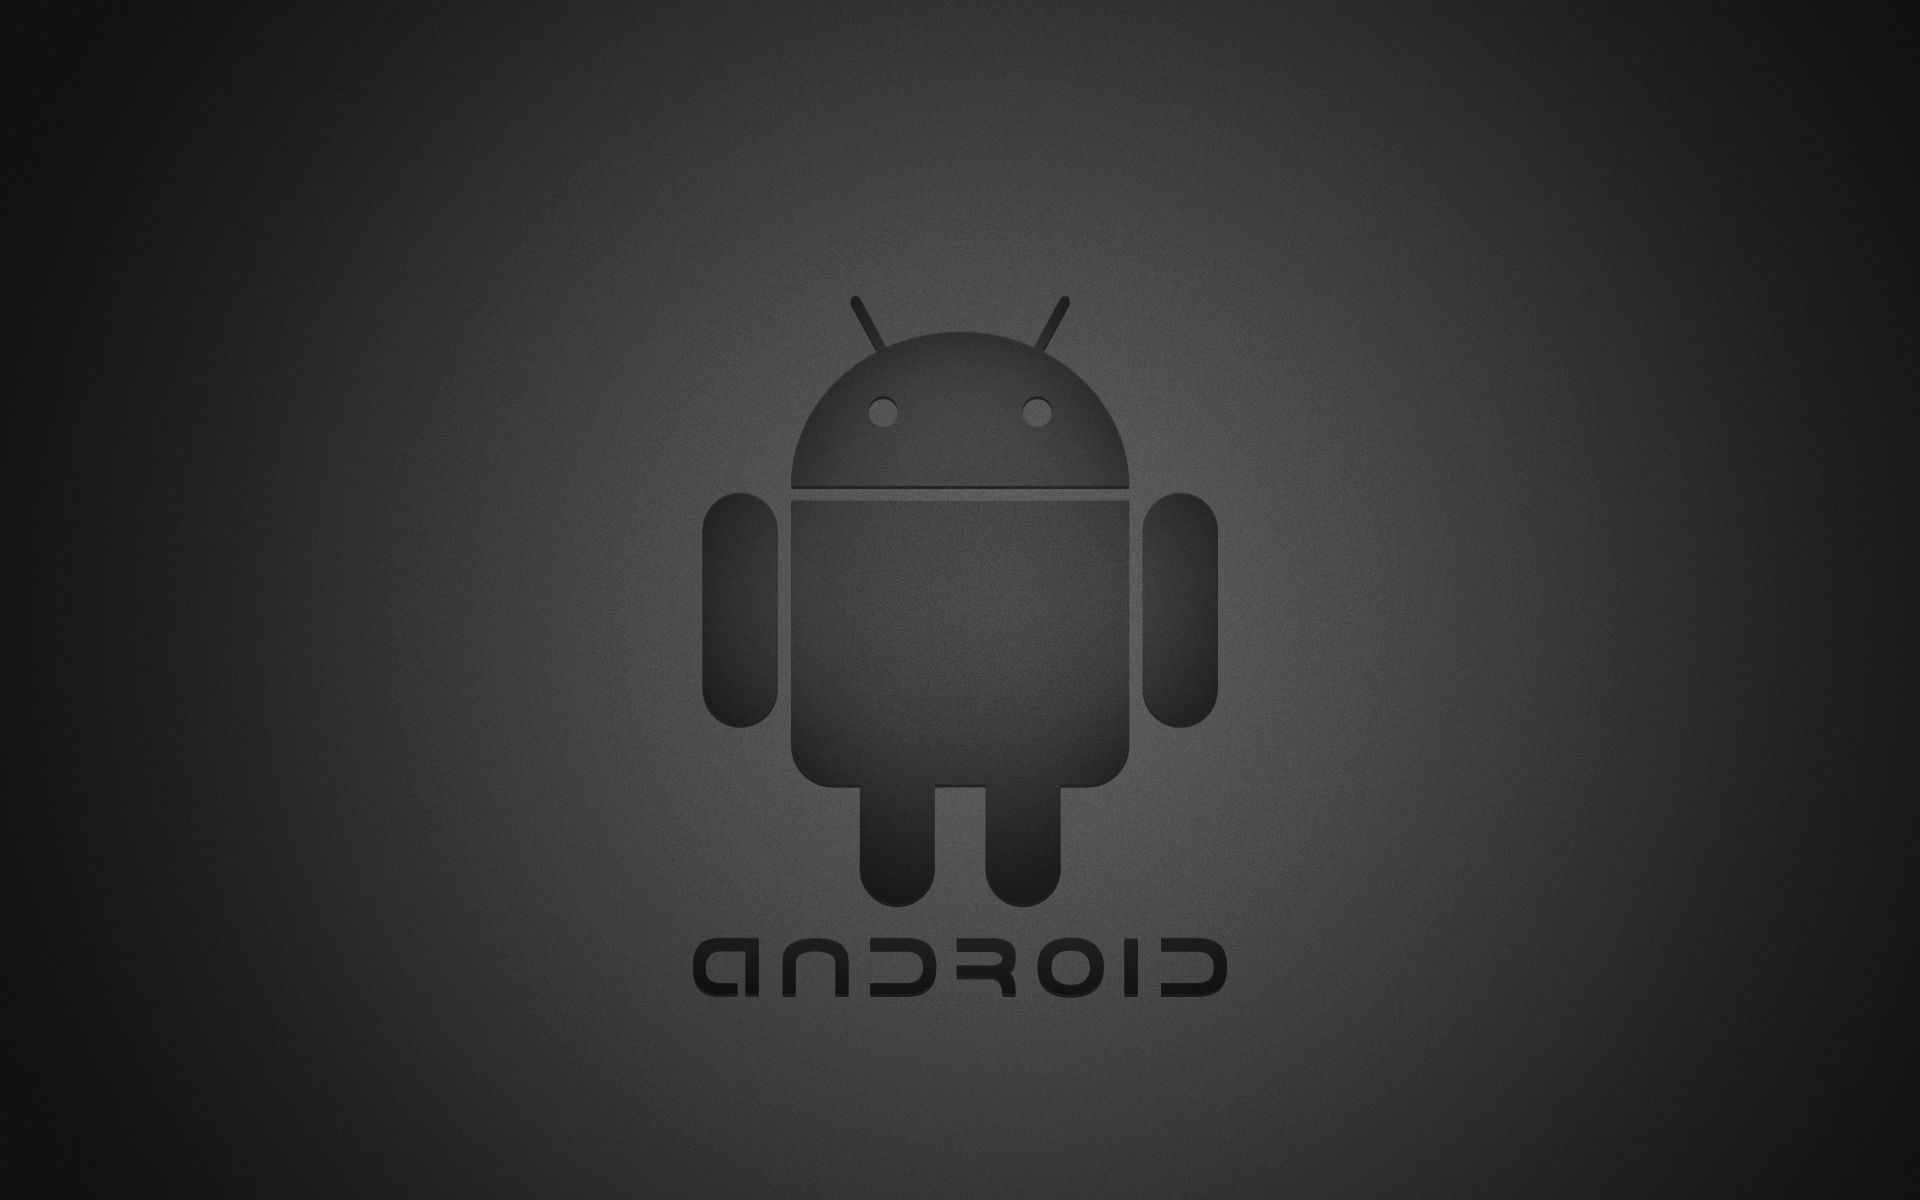 Android Logo Wallpapers Top Free Android Logo Backgrounds